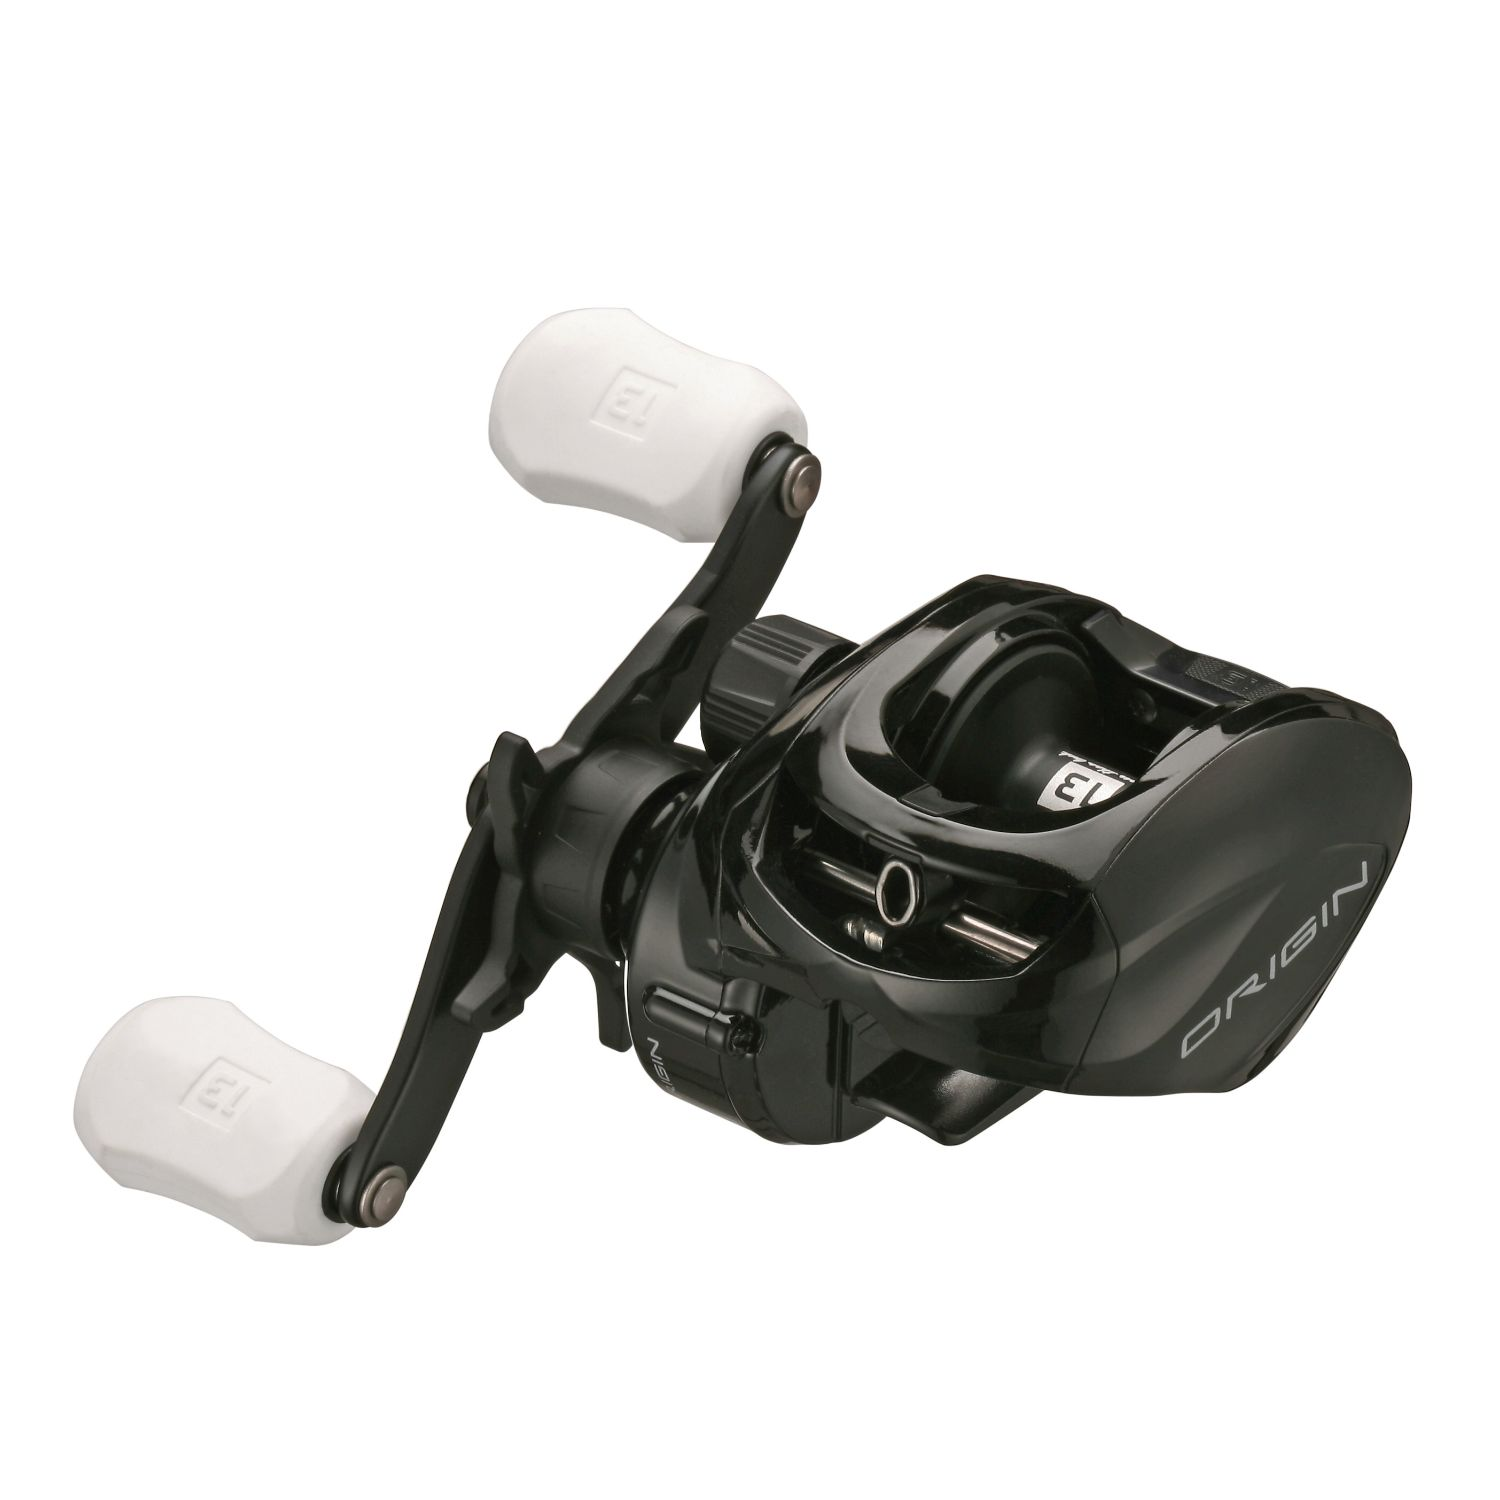 13 Fishing ORIGIN A Baitcast Reel  6.6:1 RH